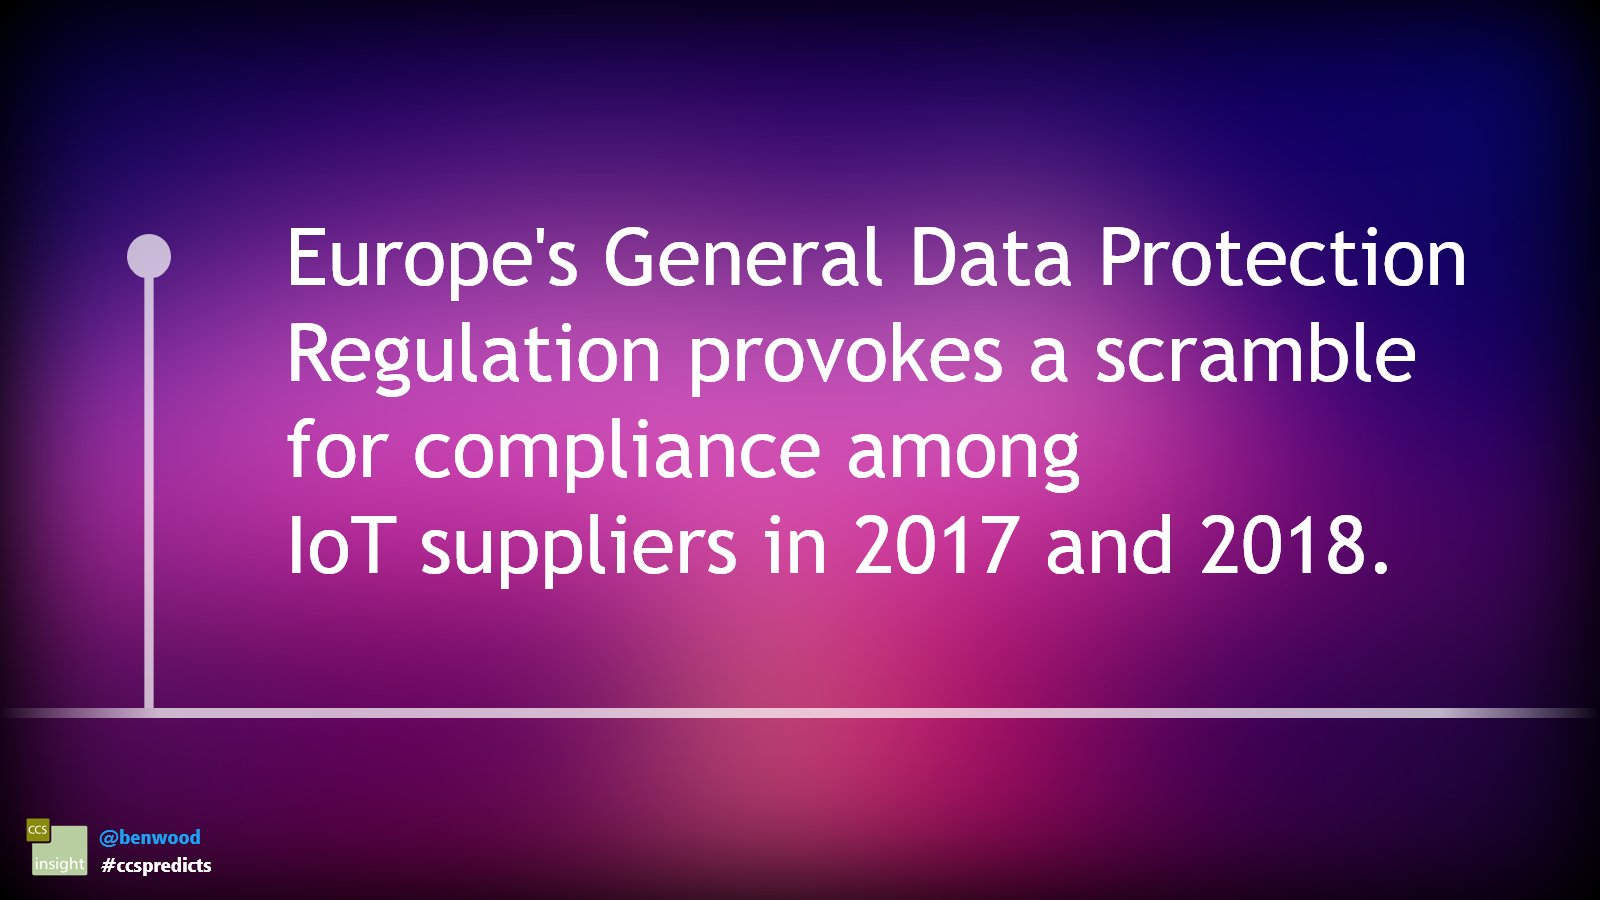 Europe's General Data Protection Regulation provokes a scramble for compliance among IoT suppliers in 2017 and 2018 #ccspredicts https://t.co/EeVAjgwJC9